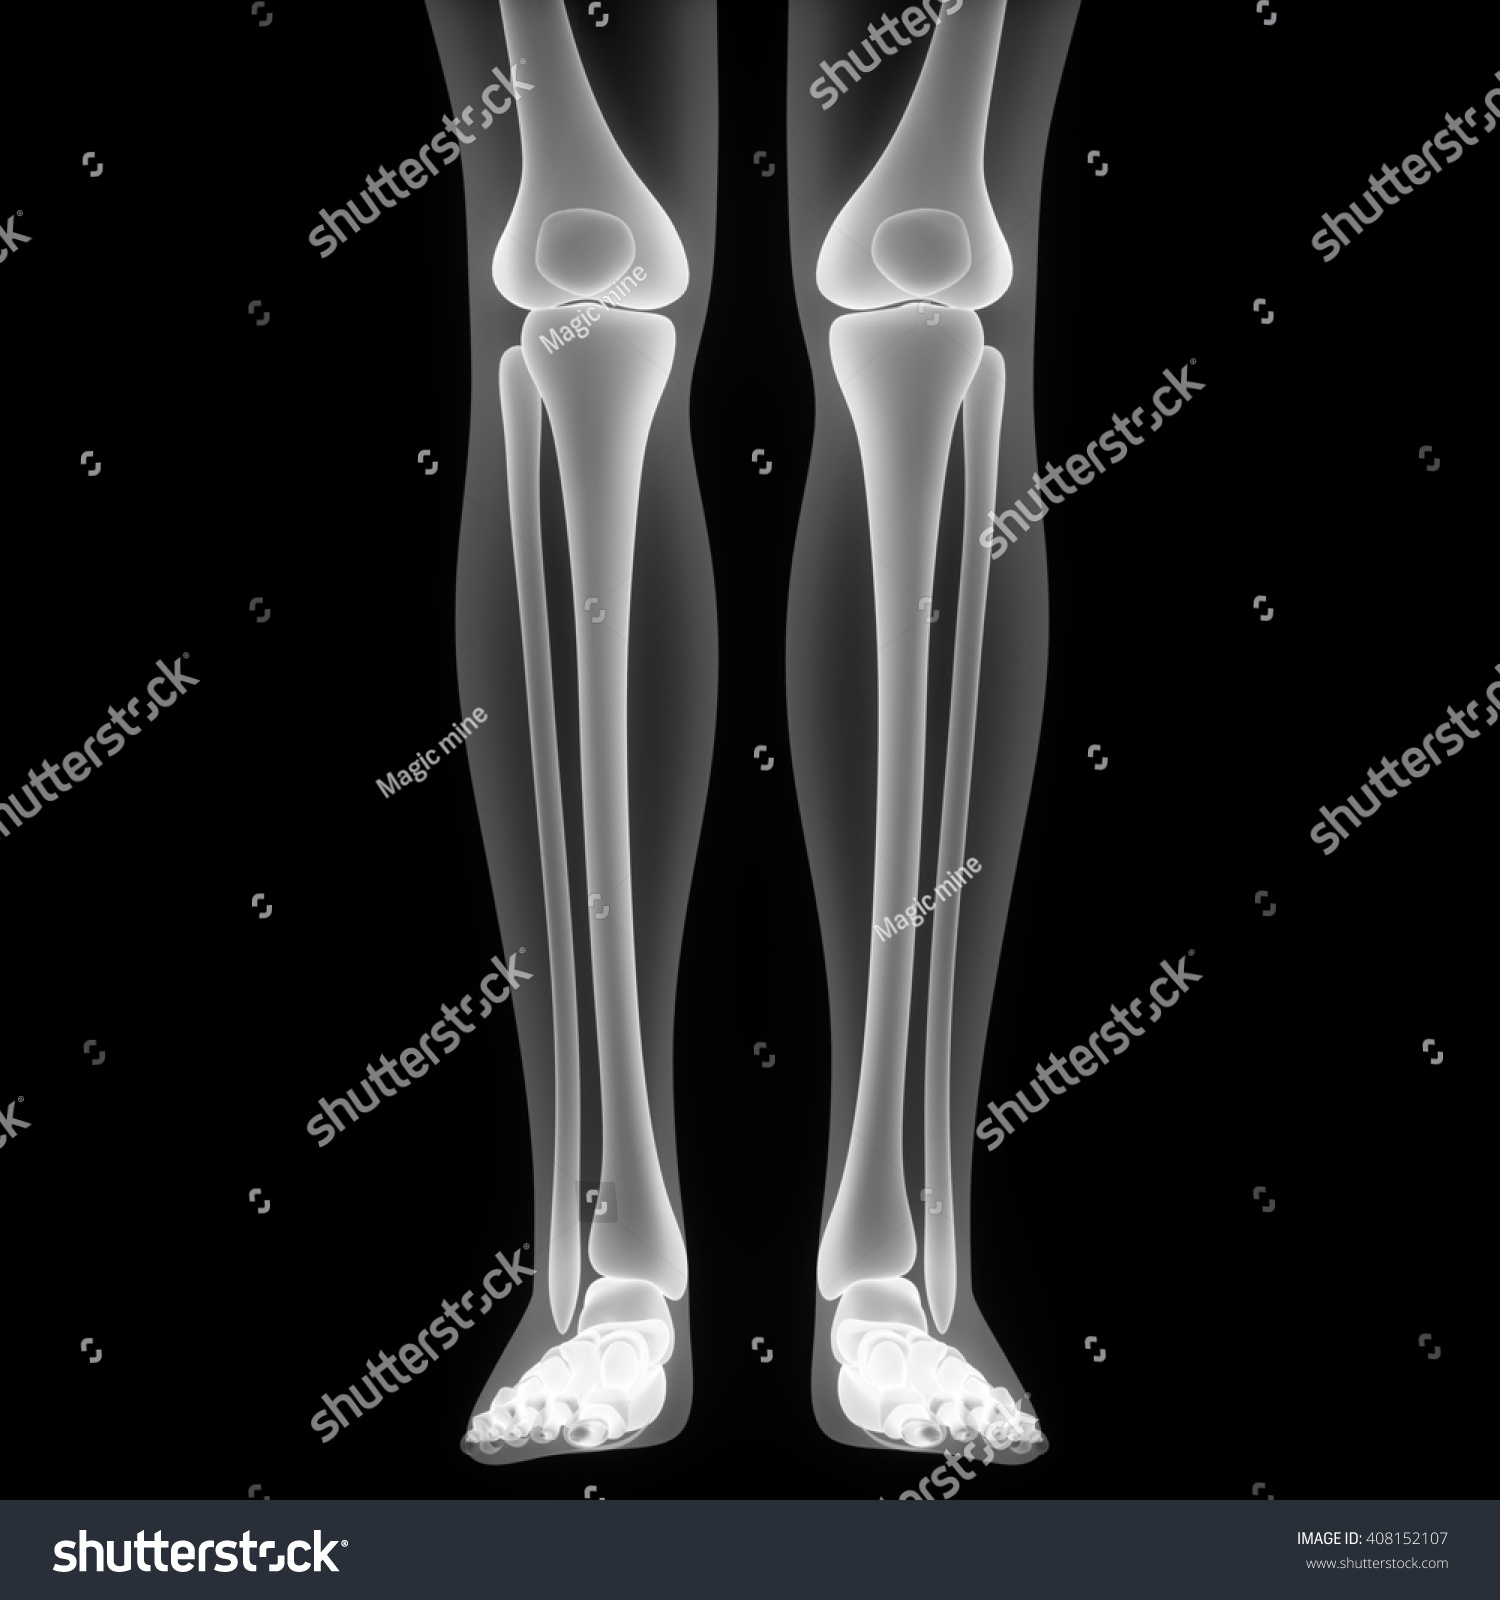 3d Illustration Of Human Body Leg Bones Ez Canvas